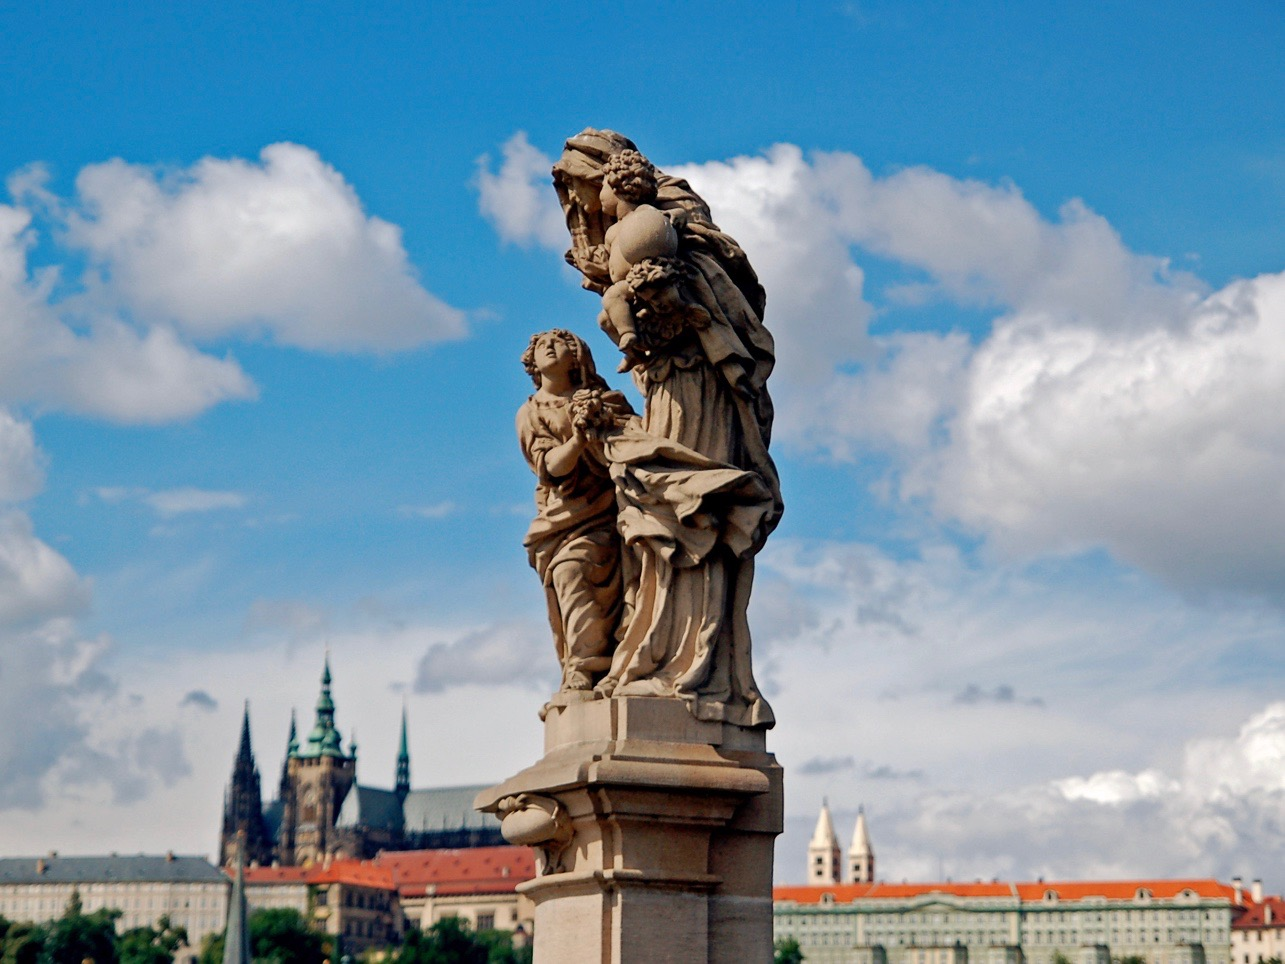 Baroque statues on the Gothic Charles Bridge, with Gothic towers of St. Vitus Cathedral and elements of Prague Castle in the background.